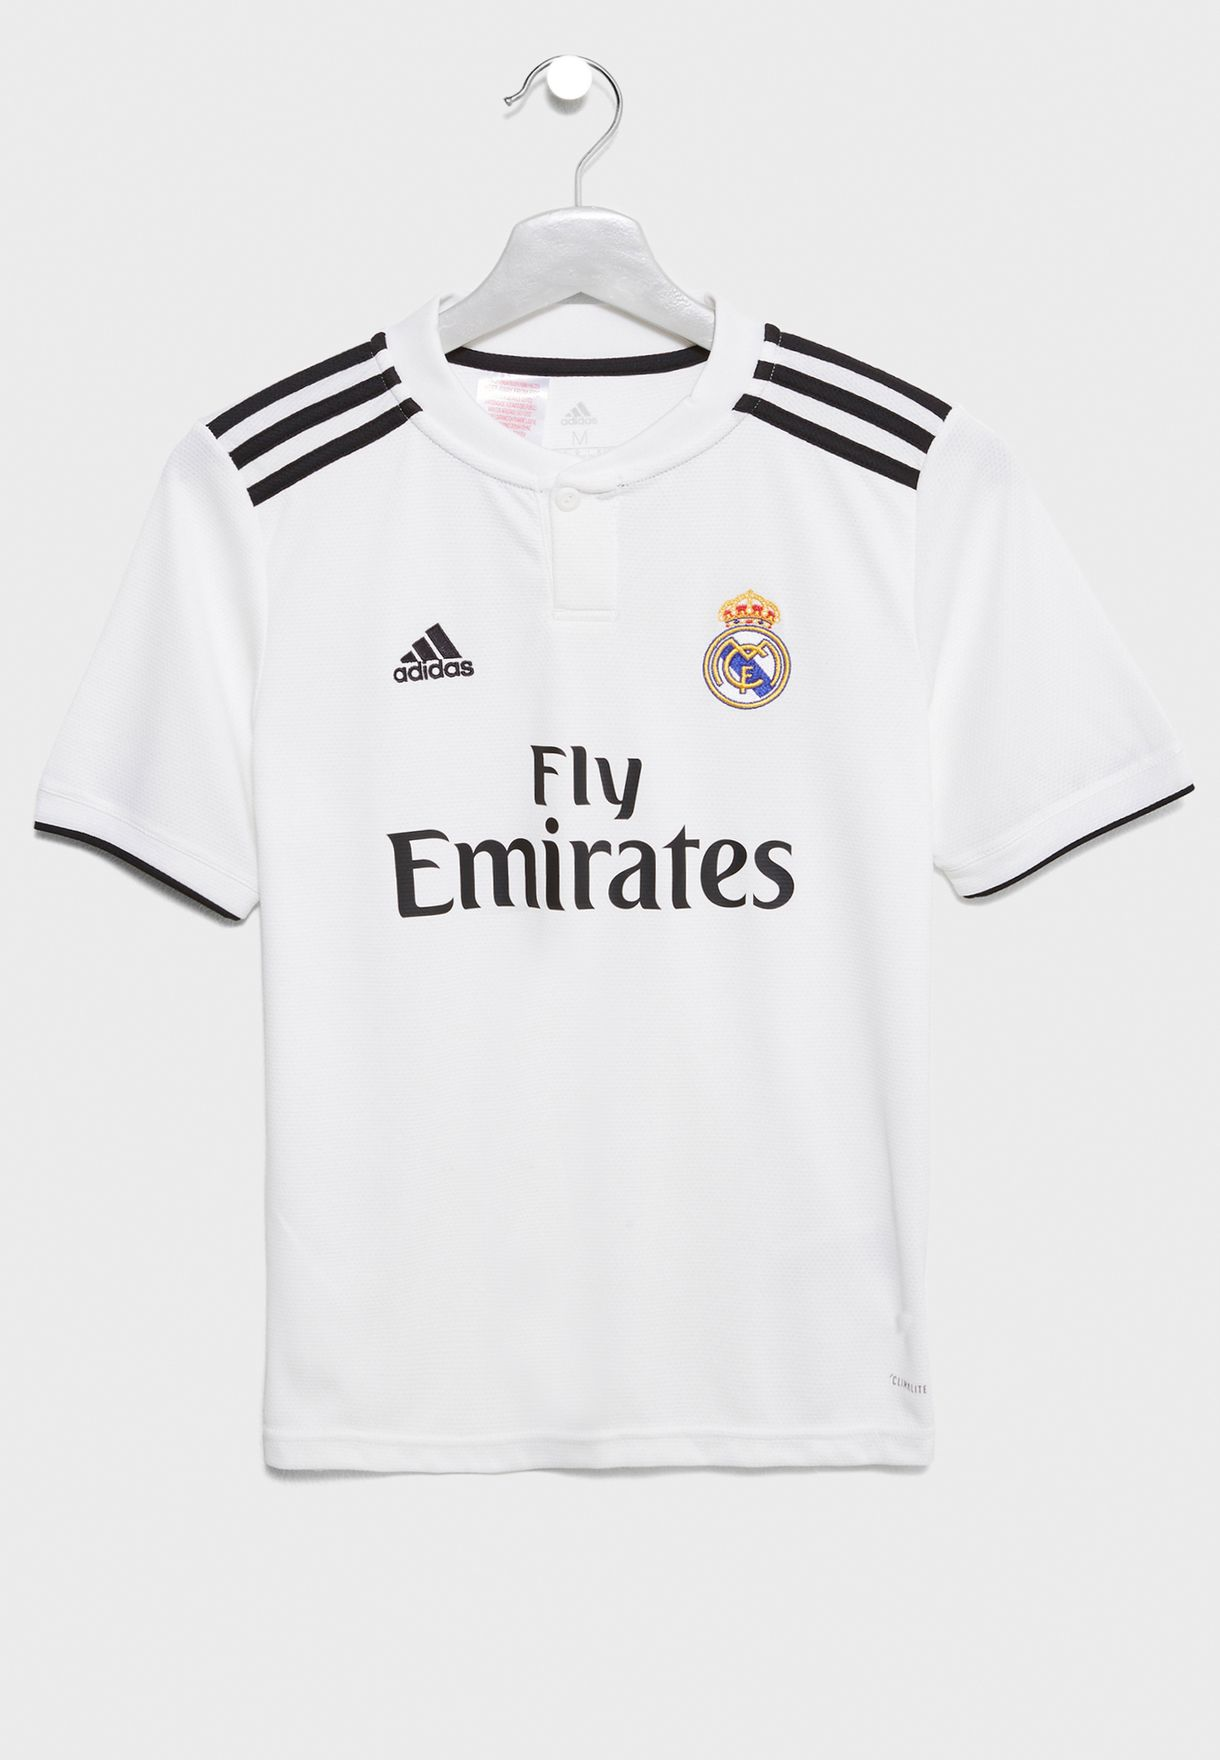 4a83de5fa Shop adidas white Youth Real Madrid 18 19 Home Jersey CG0554 for ...